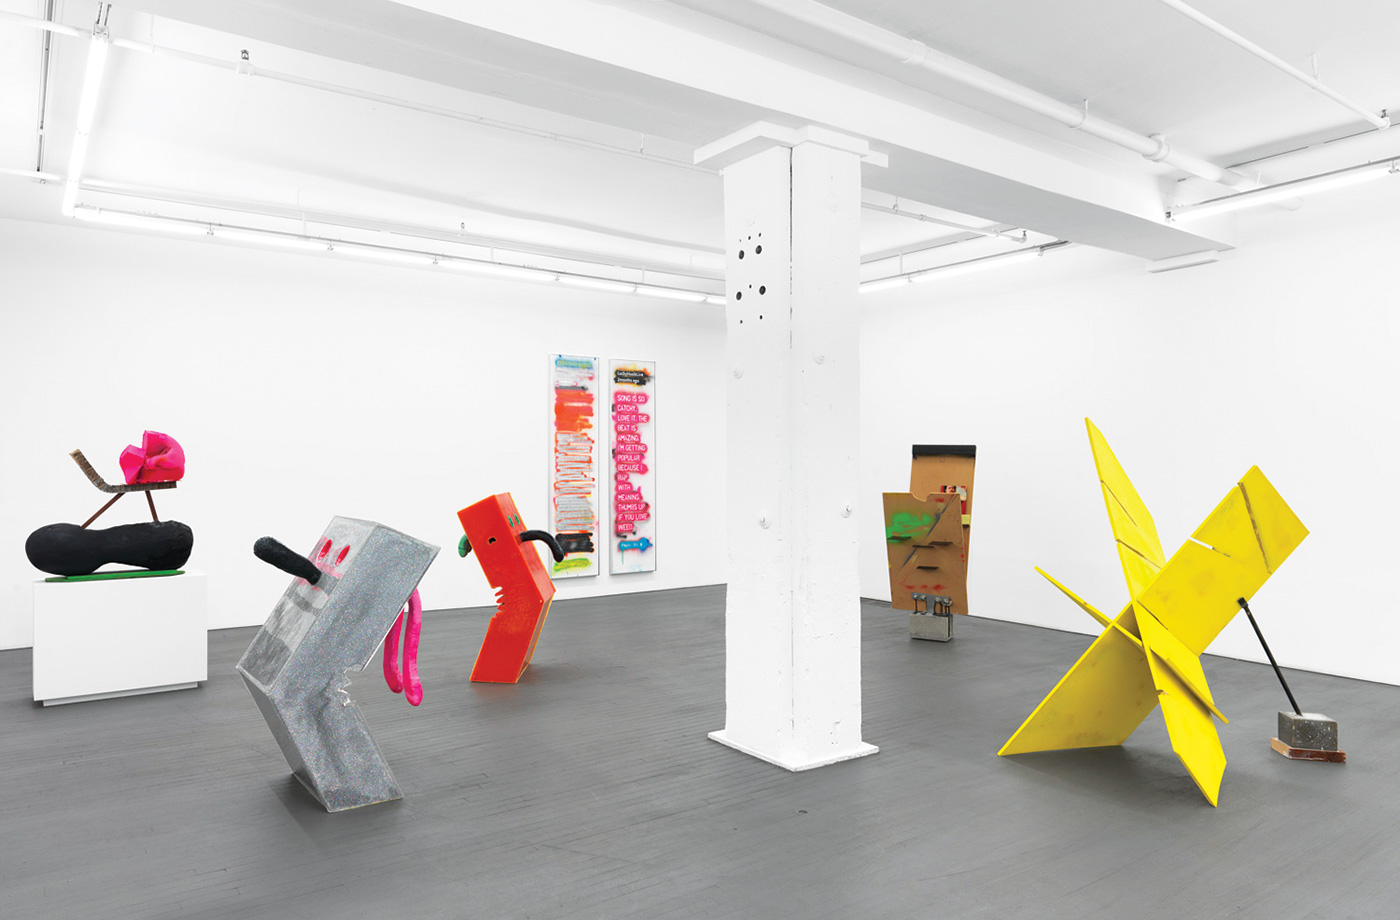 Harry Dodge - Installation View, The Cybernetic Fold